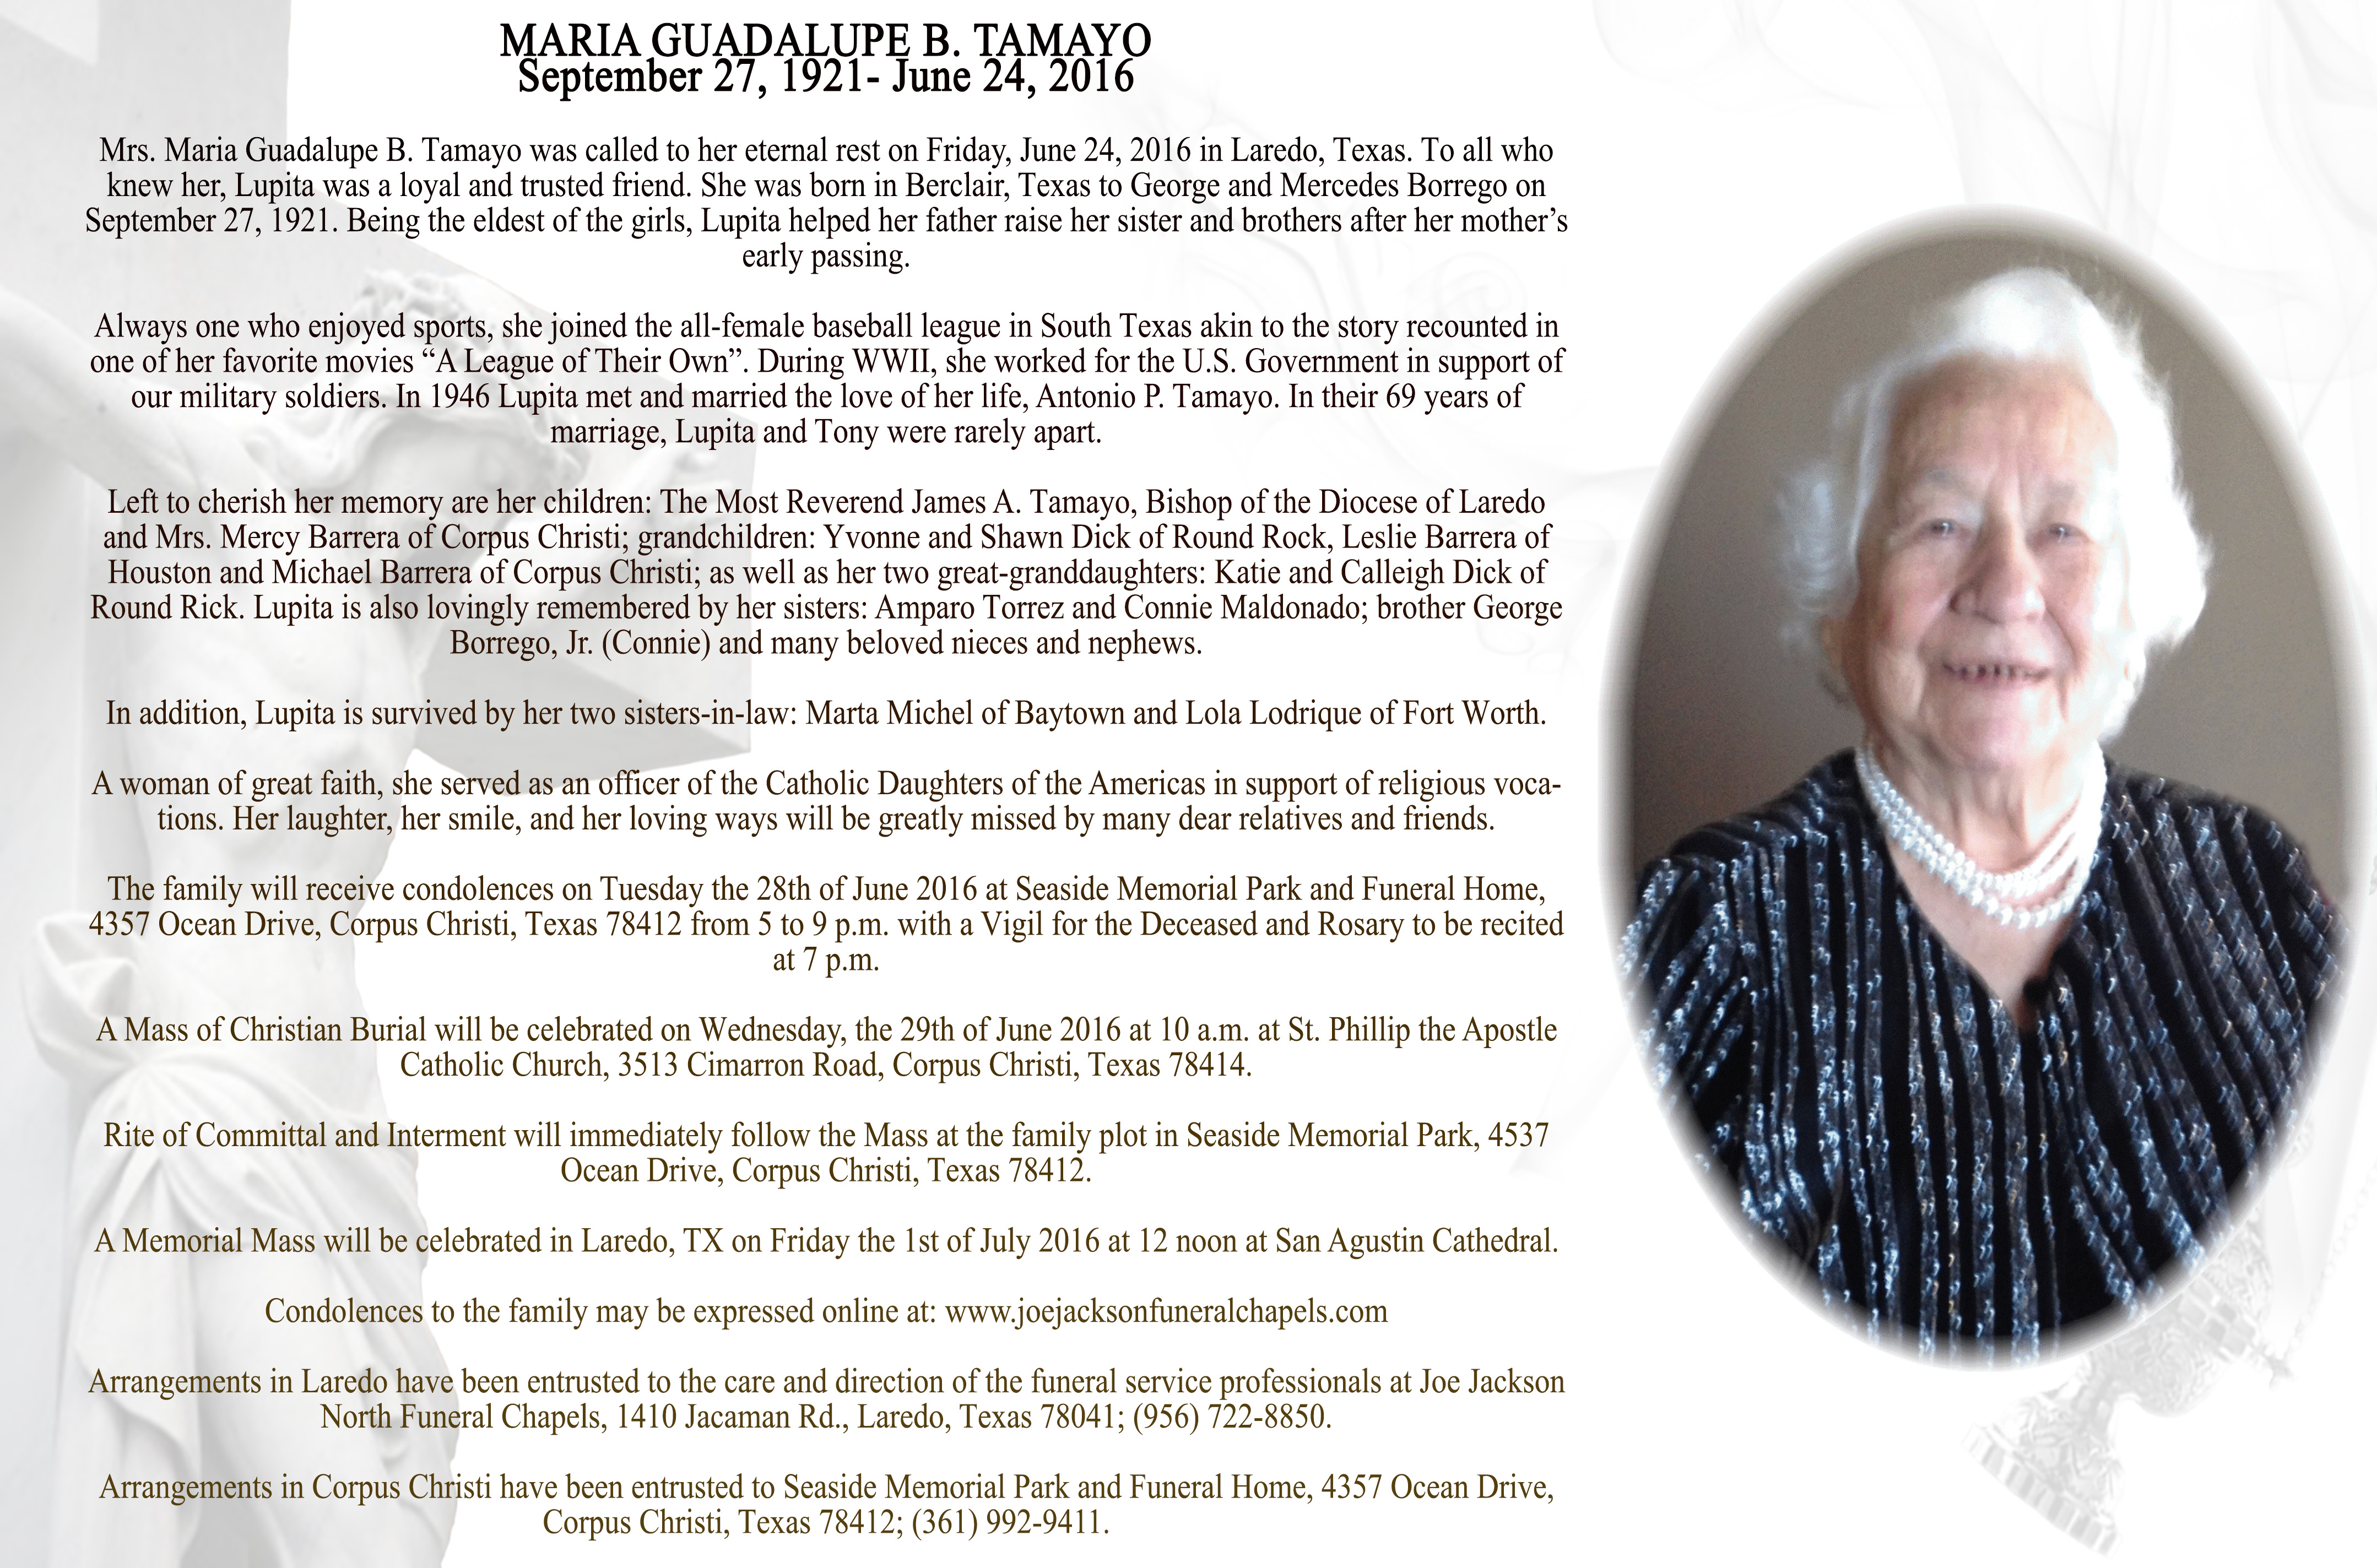 Mrs. María Guadalupe Tamayo\'s Obituary & Funeral Arrangements ...